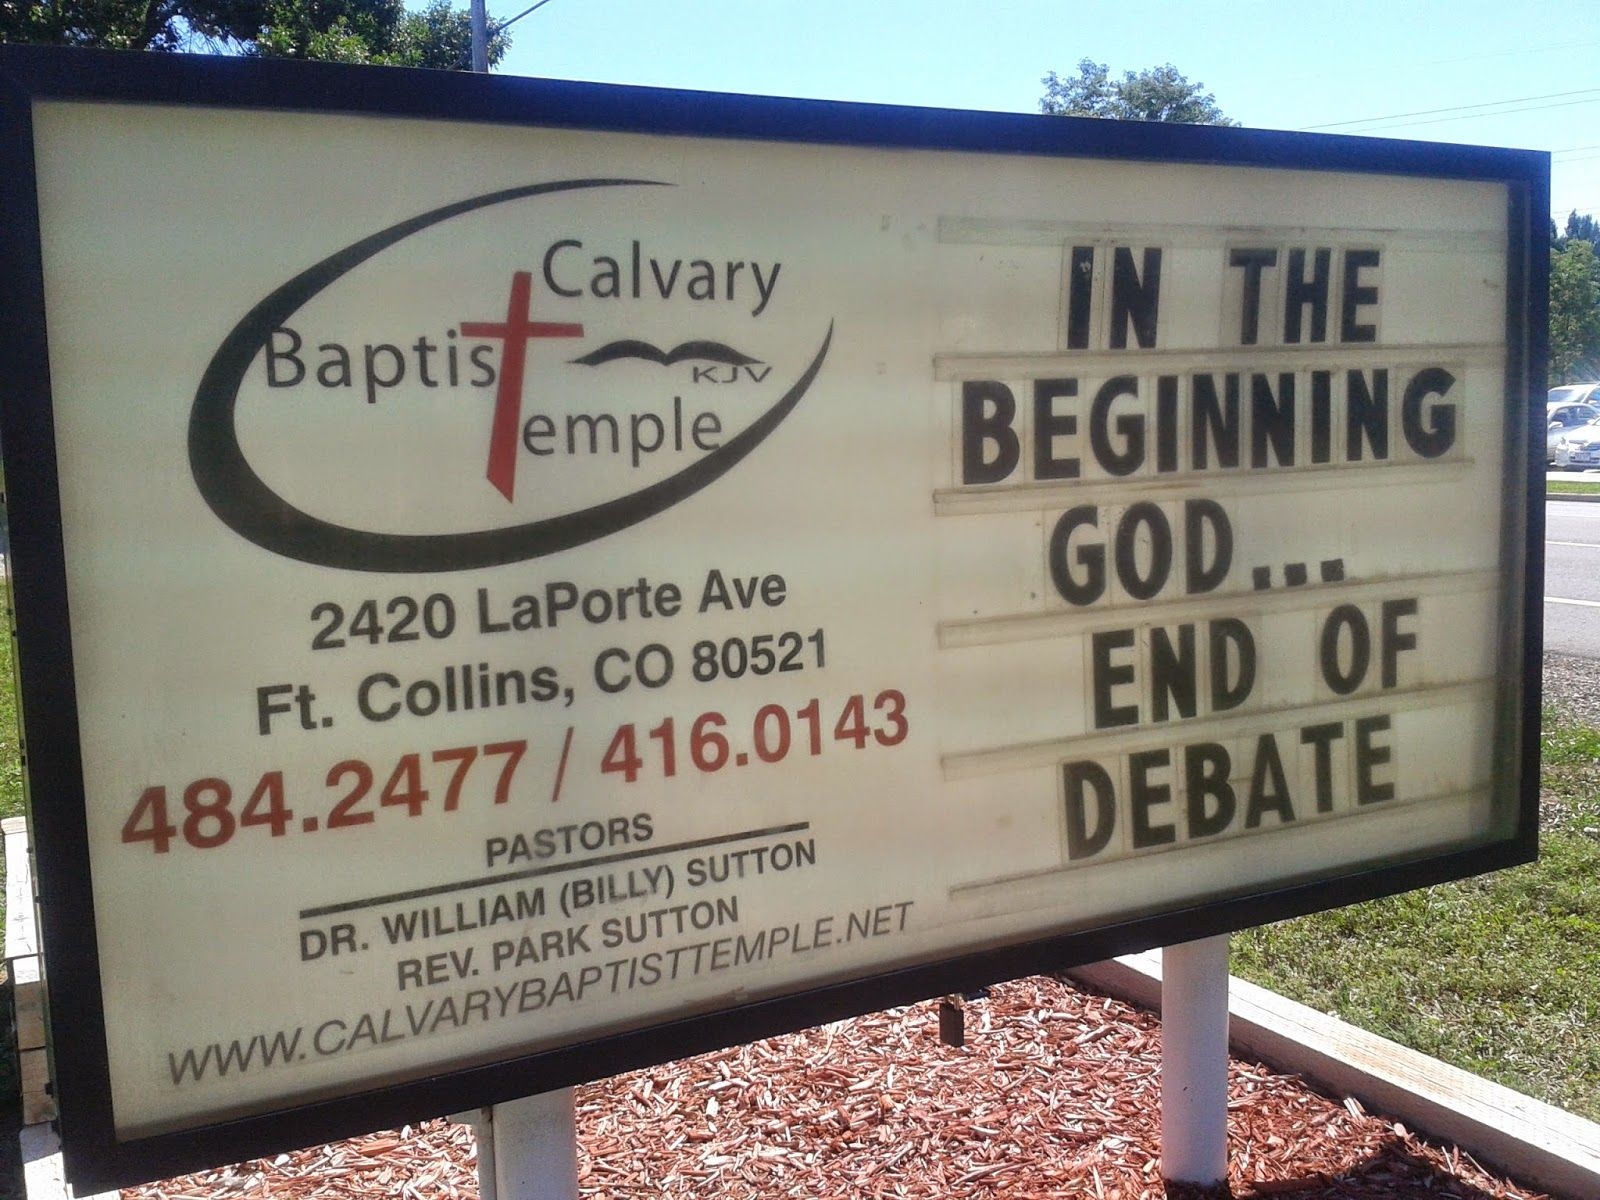 Church Sign Quotes Alluring In The Beginning Goddebate Over  Church Sign Board Message